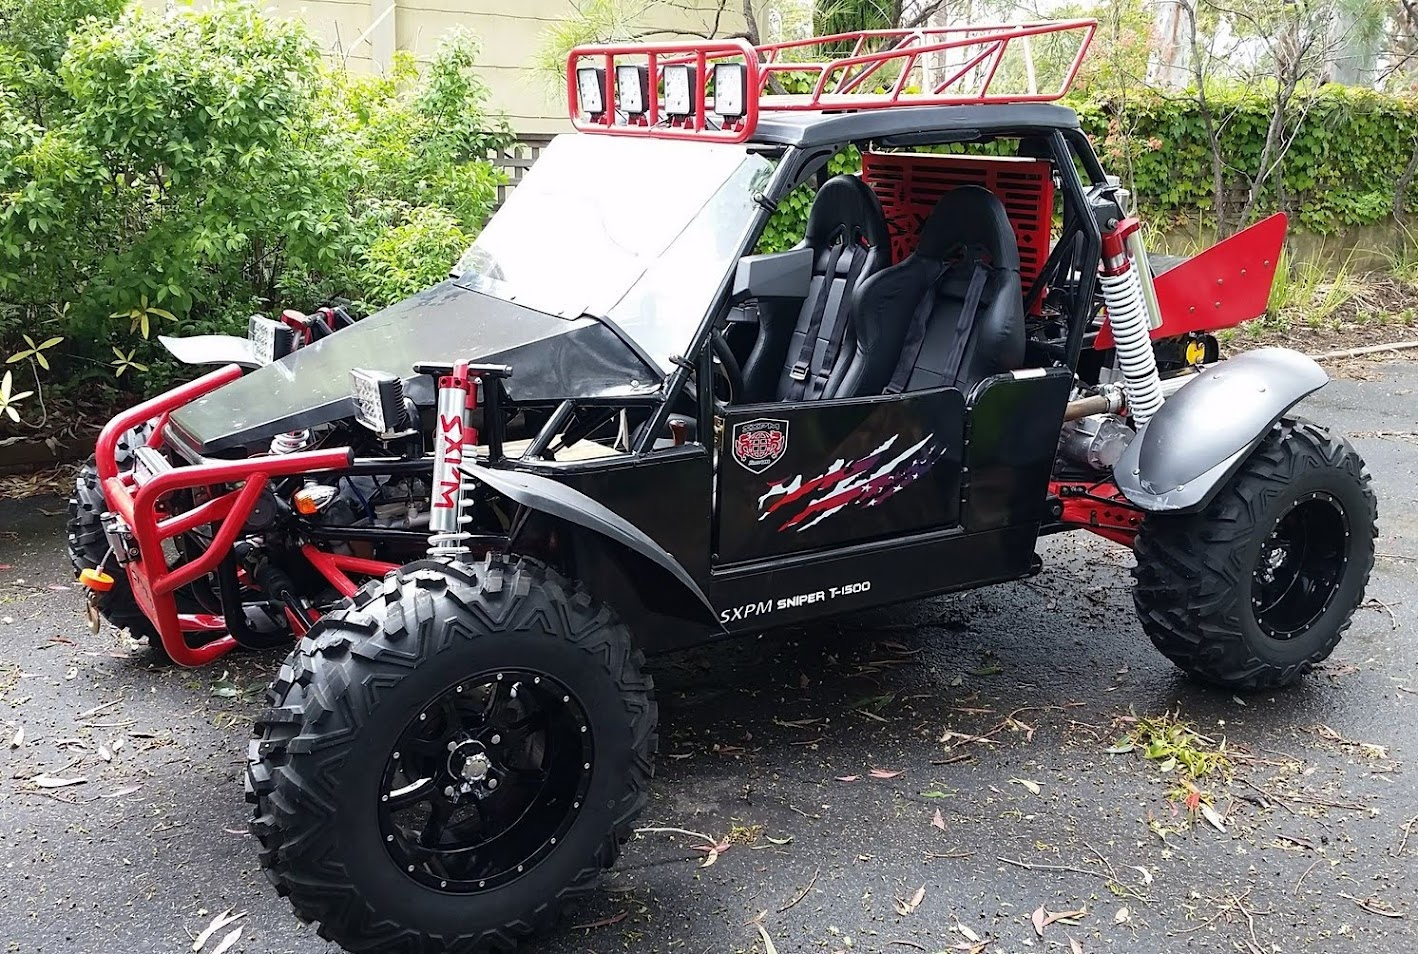 1500cc Sand Sniper Dune Buggy Odes Scorpion Side X Side Offroad 2WD BMS GoKart